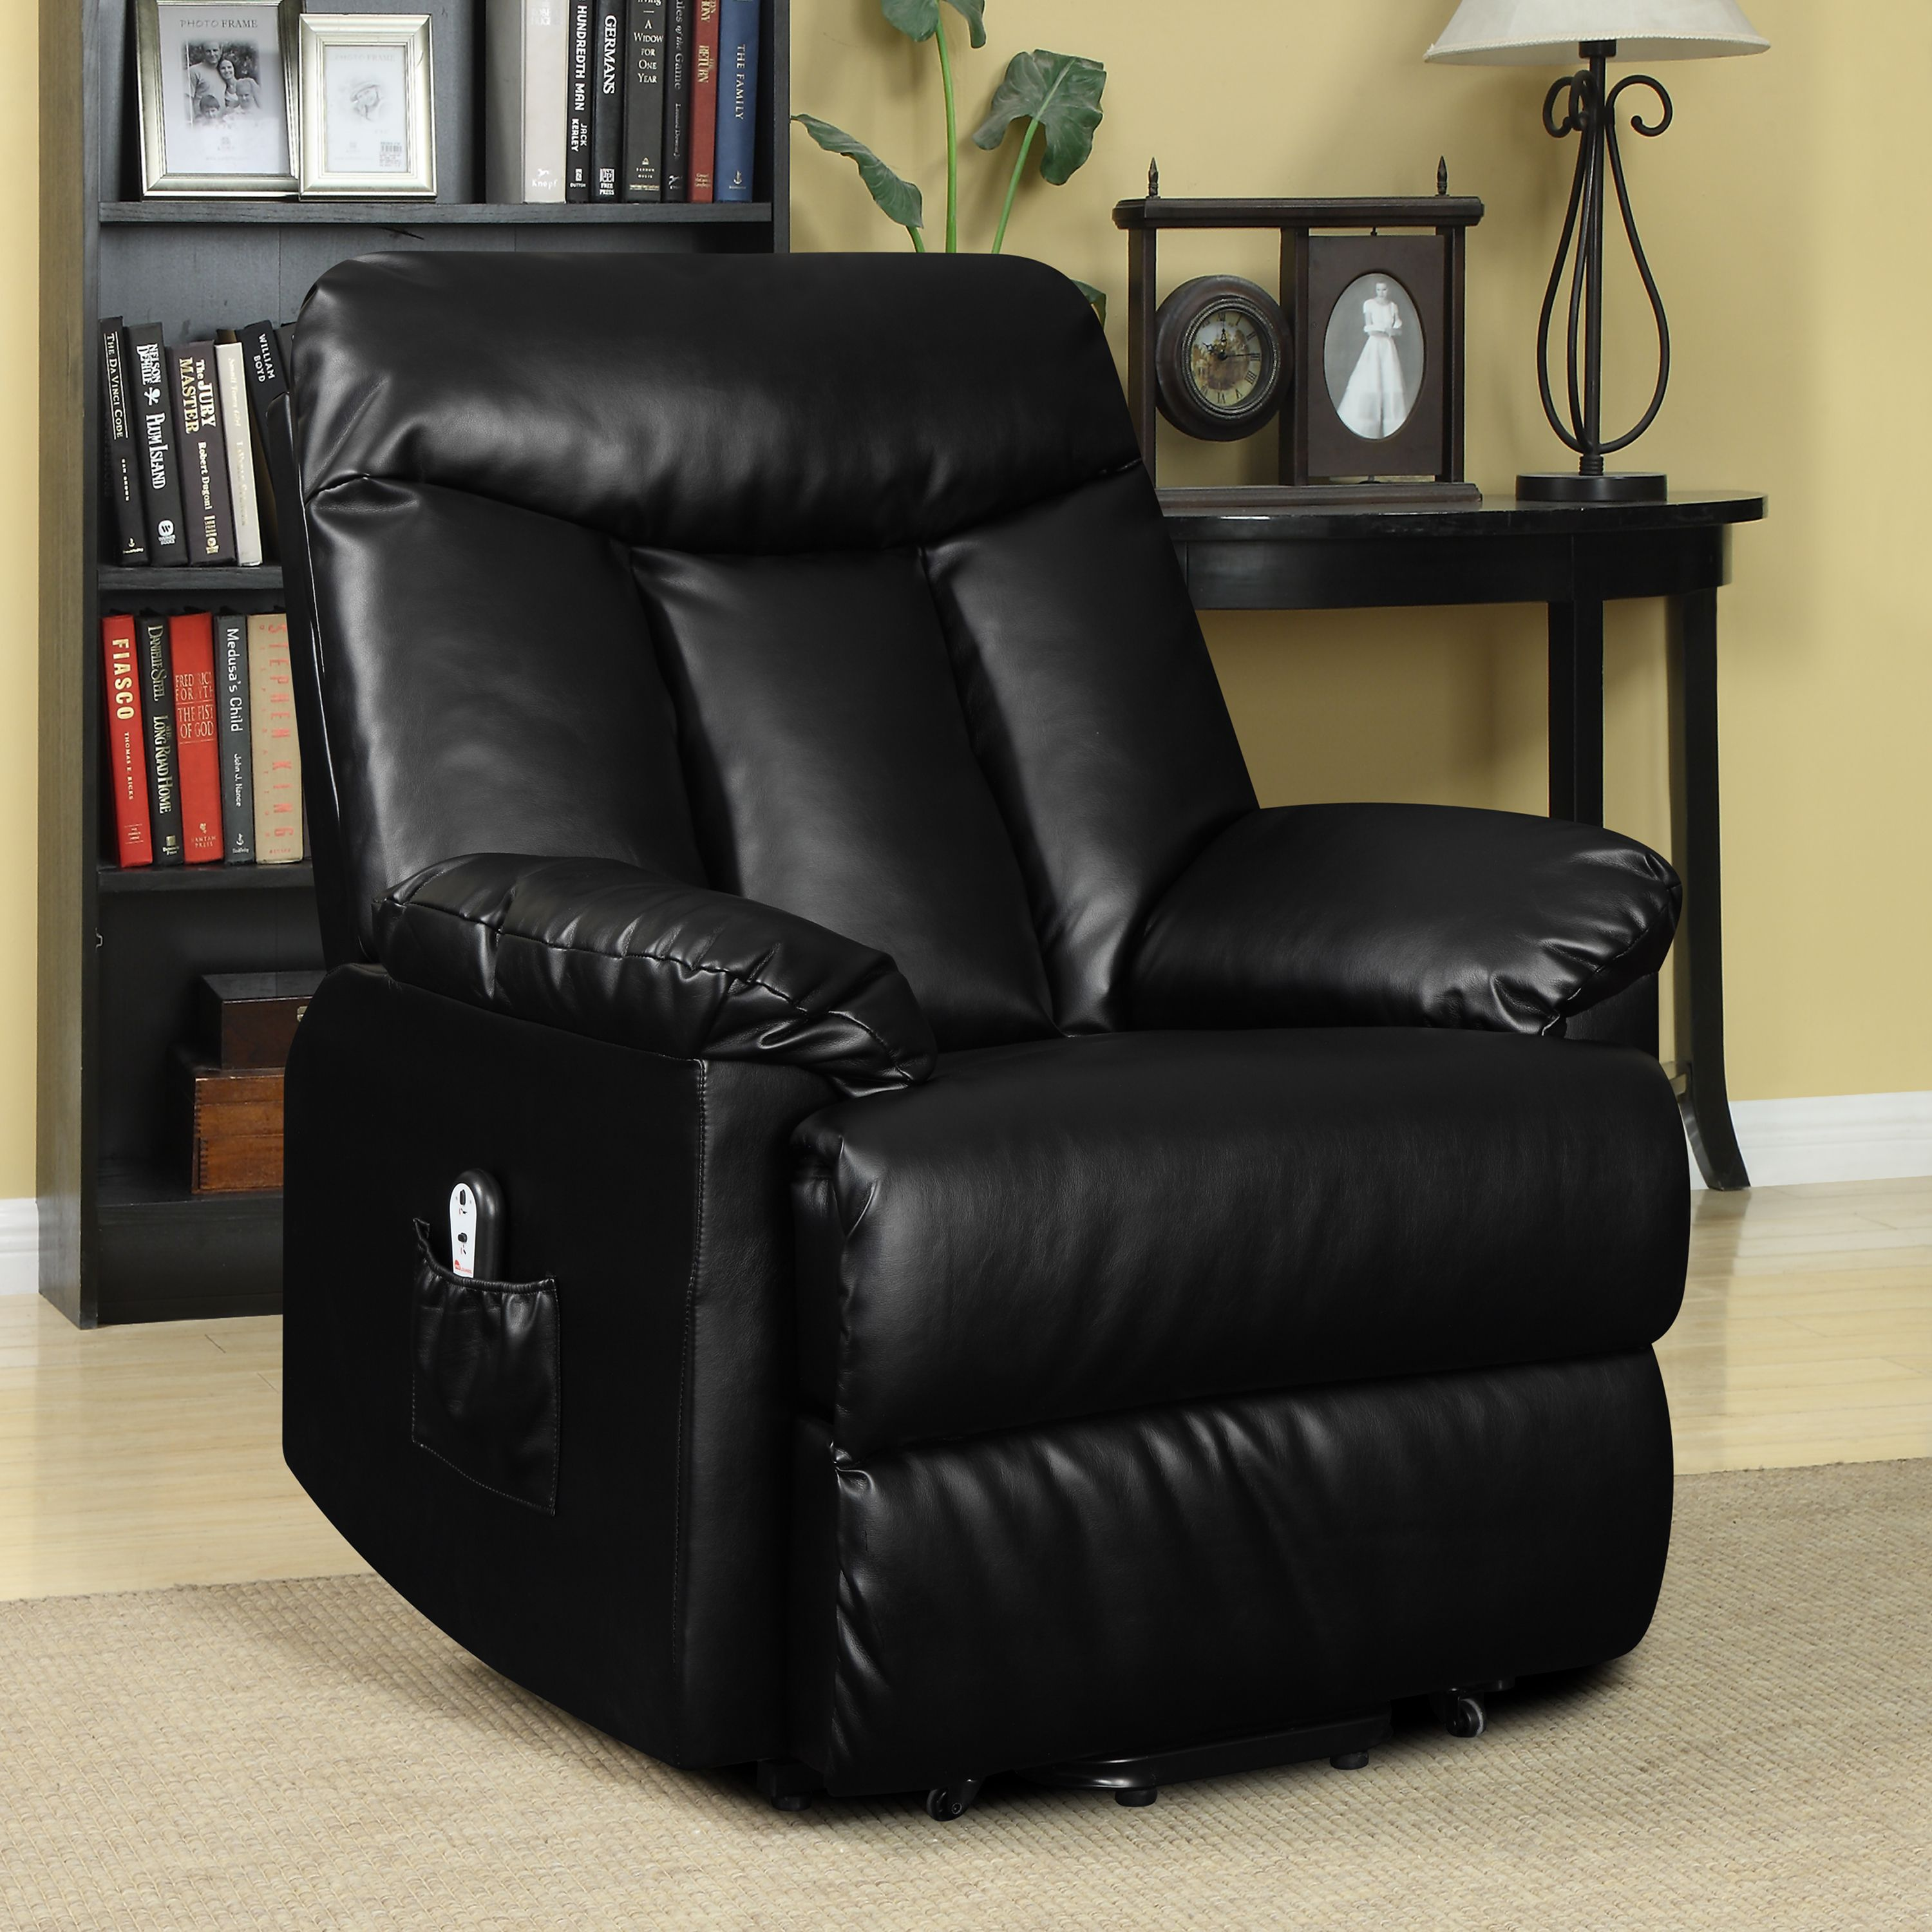 Marvelous The Prolounger Lya Lift Recliner Chair Makes Getting Out Of Onthecornerstone Fun Painted Chair Ideas Images Onthecornerstoneorg